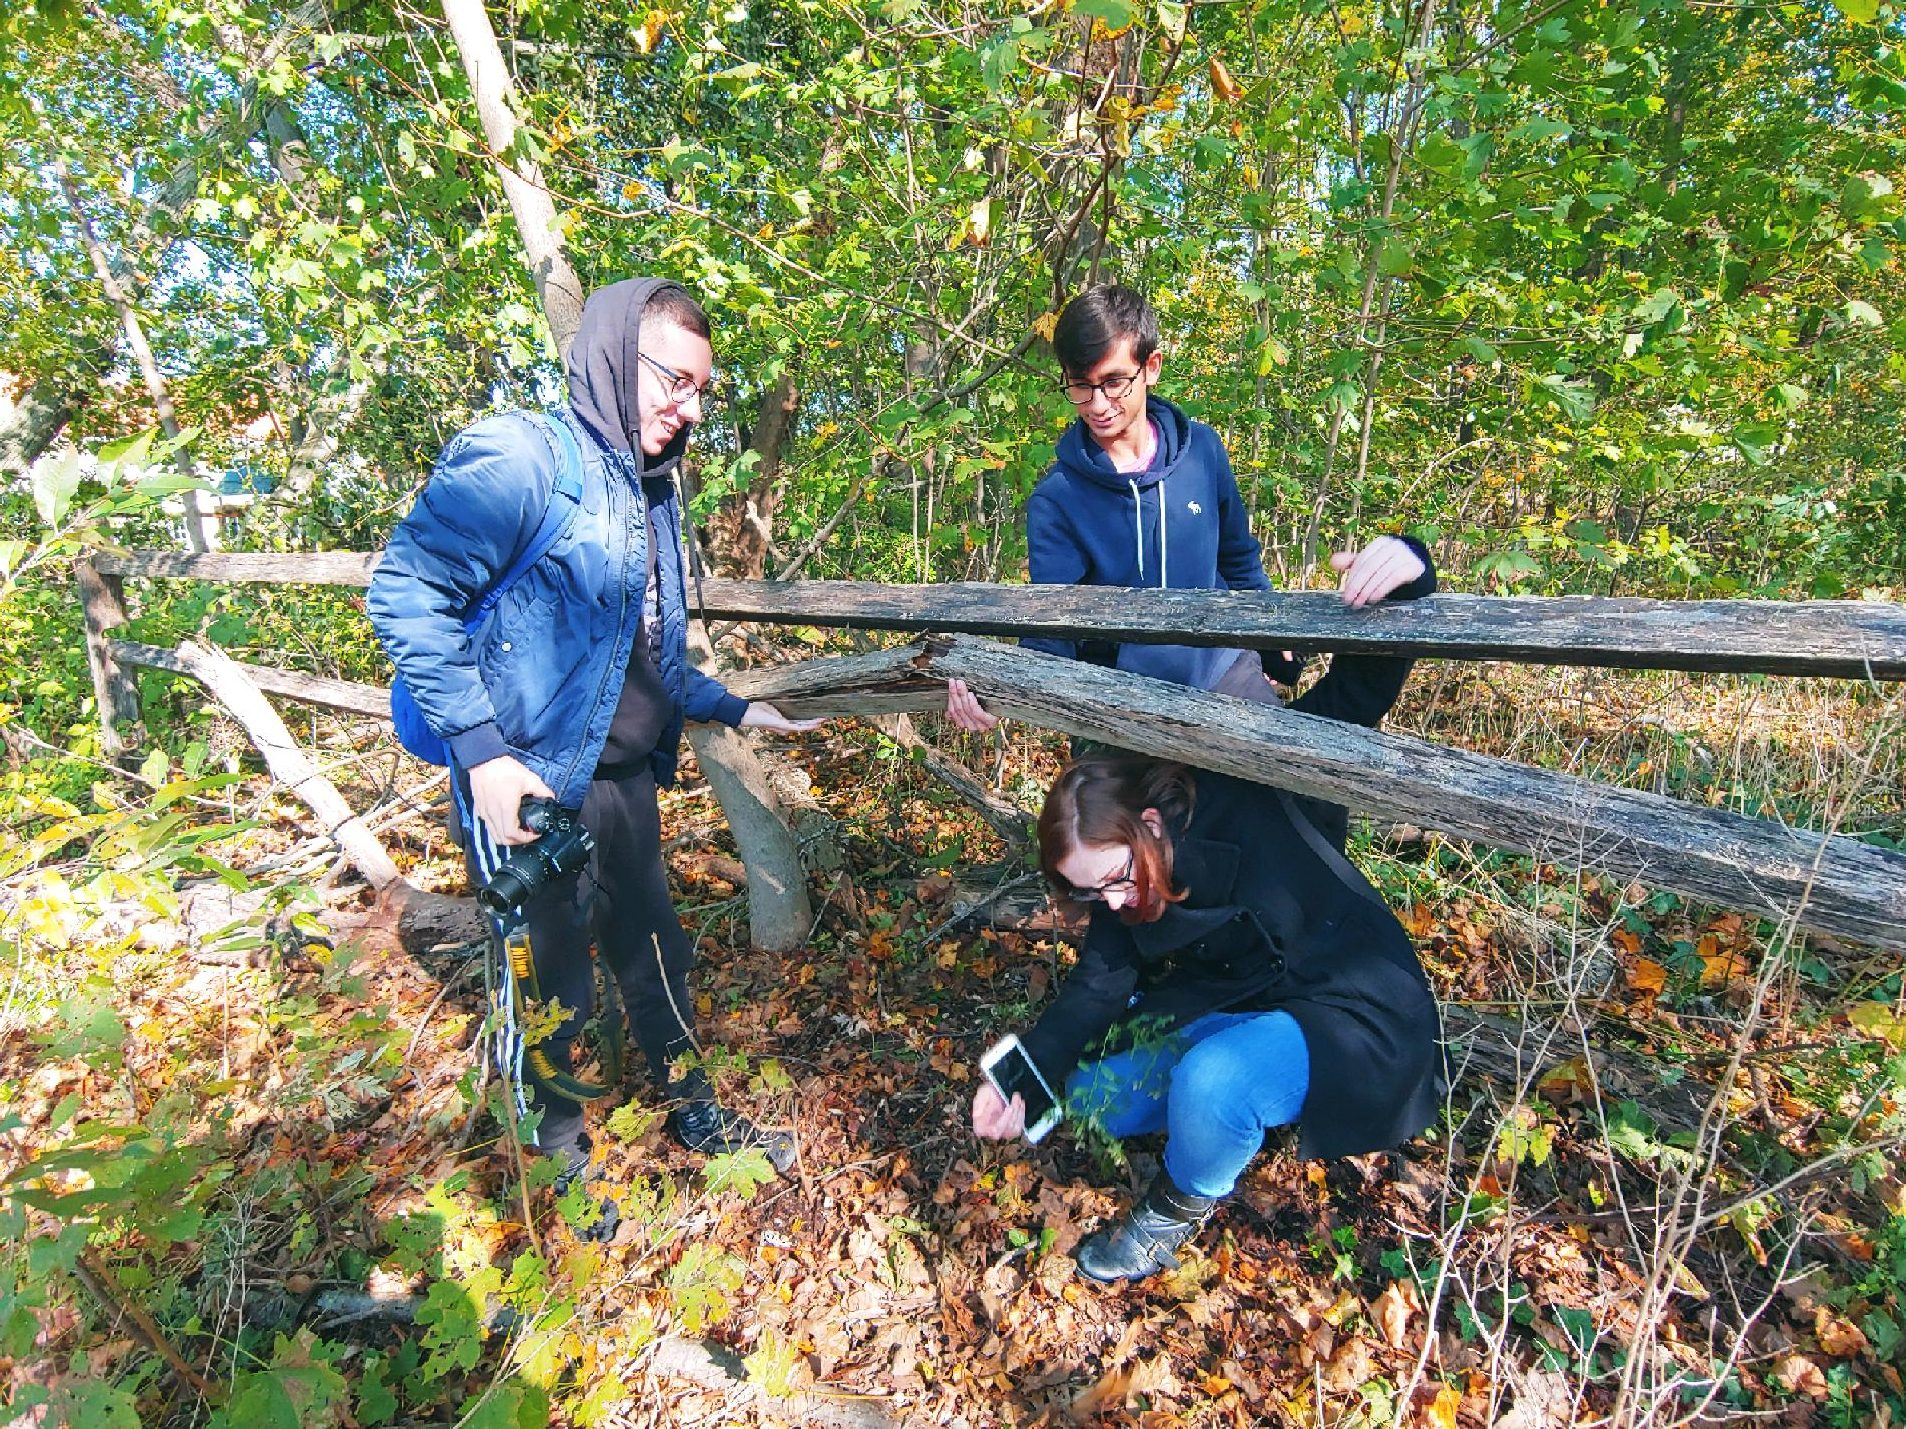 Journalism students uncover stories of slavery on Long Island